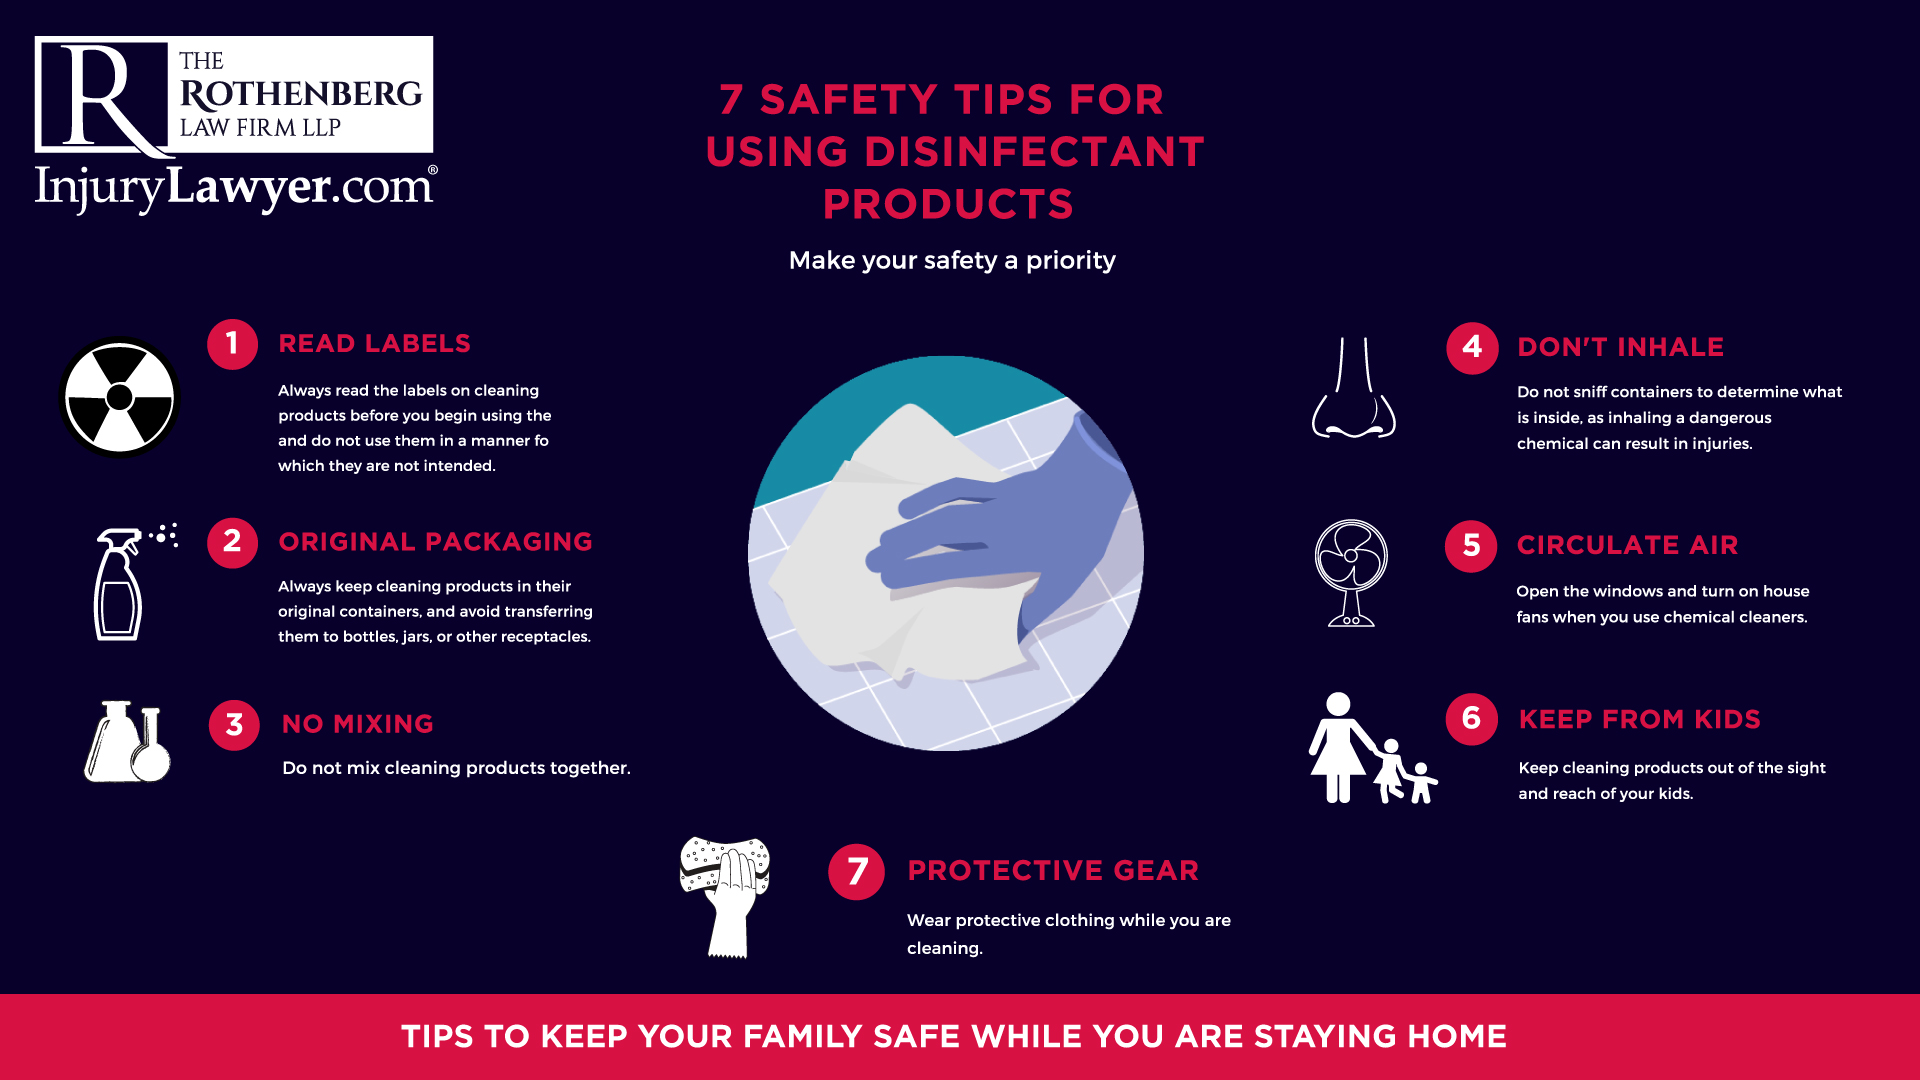 Disinfectant Product Safety Infographic